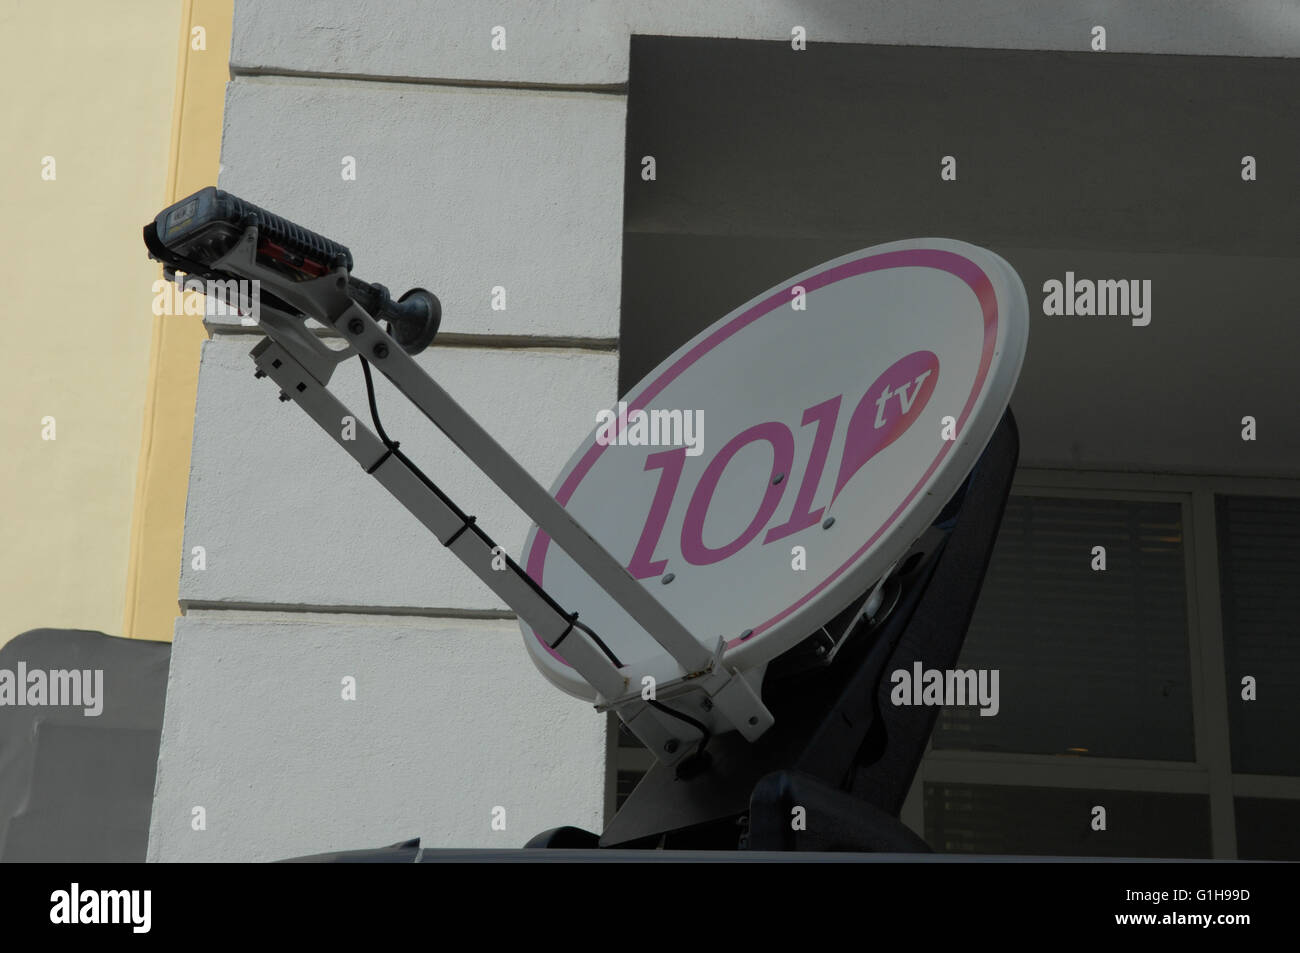 Broadcasting truck in Malaga Spain - Stock Image